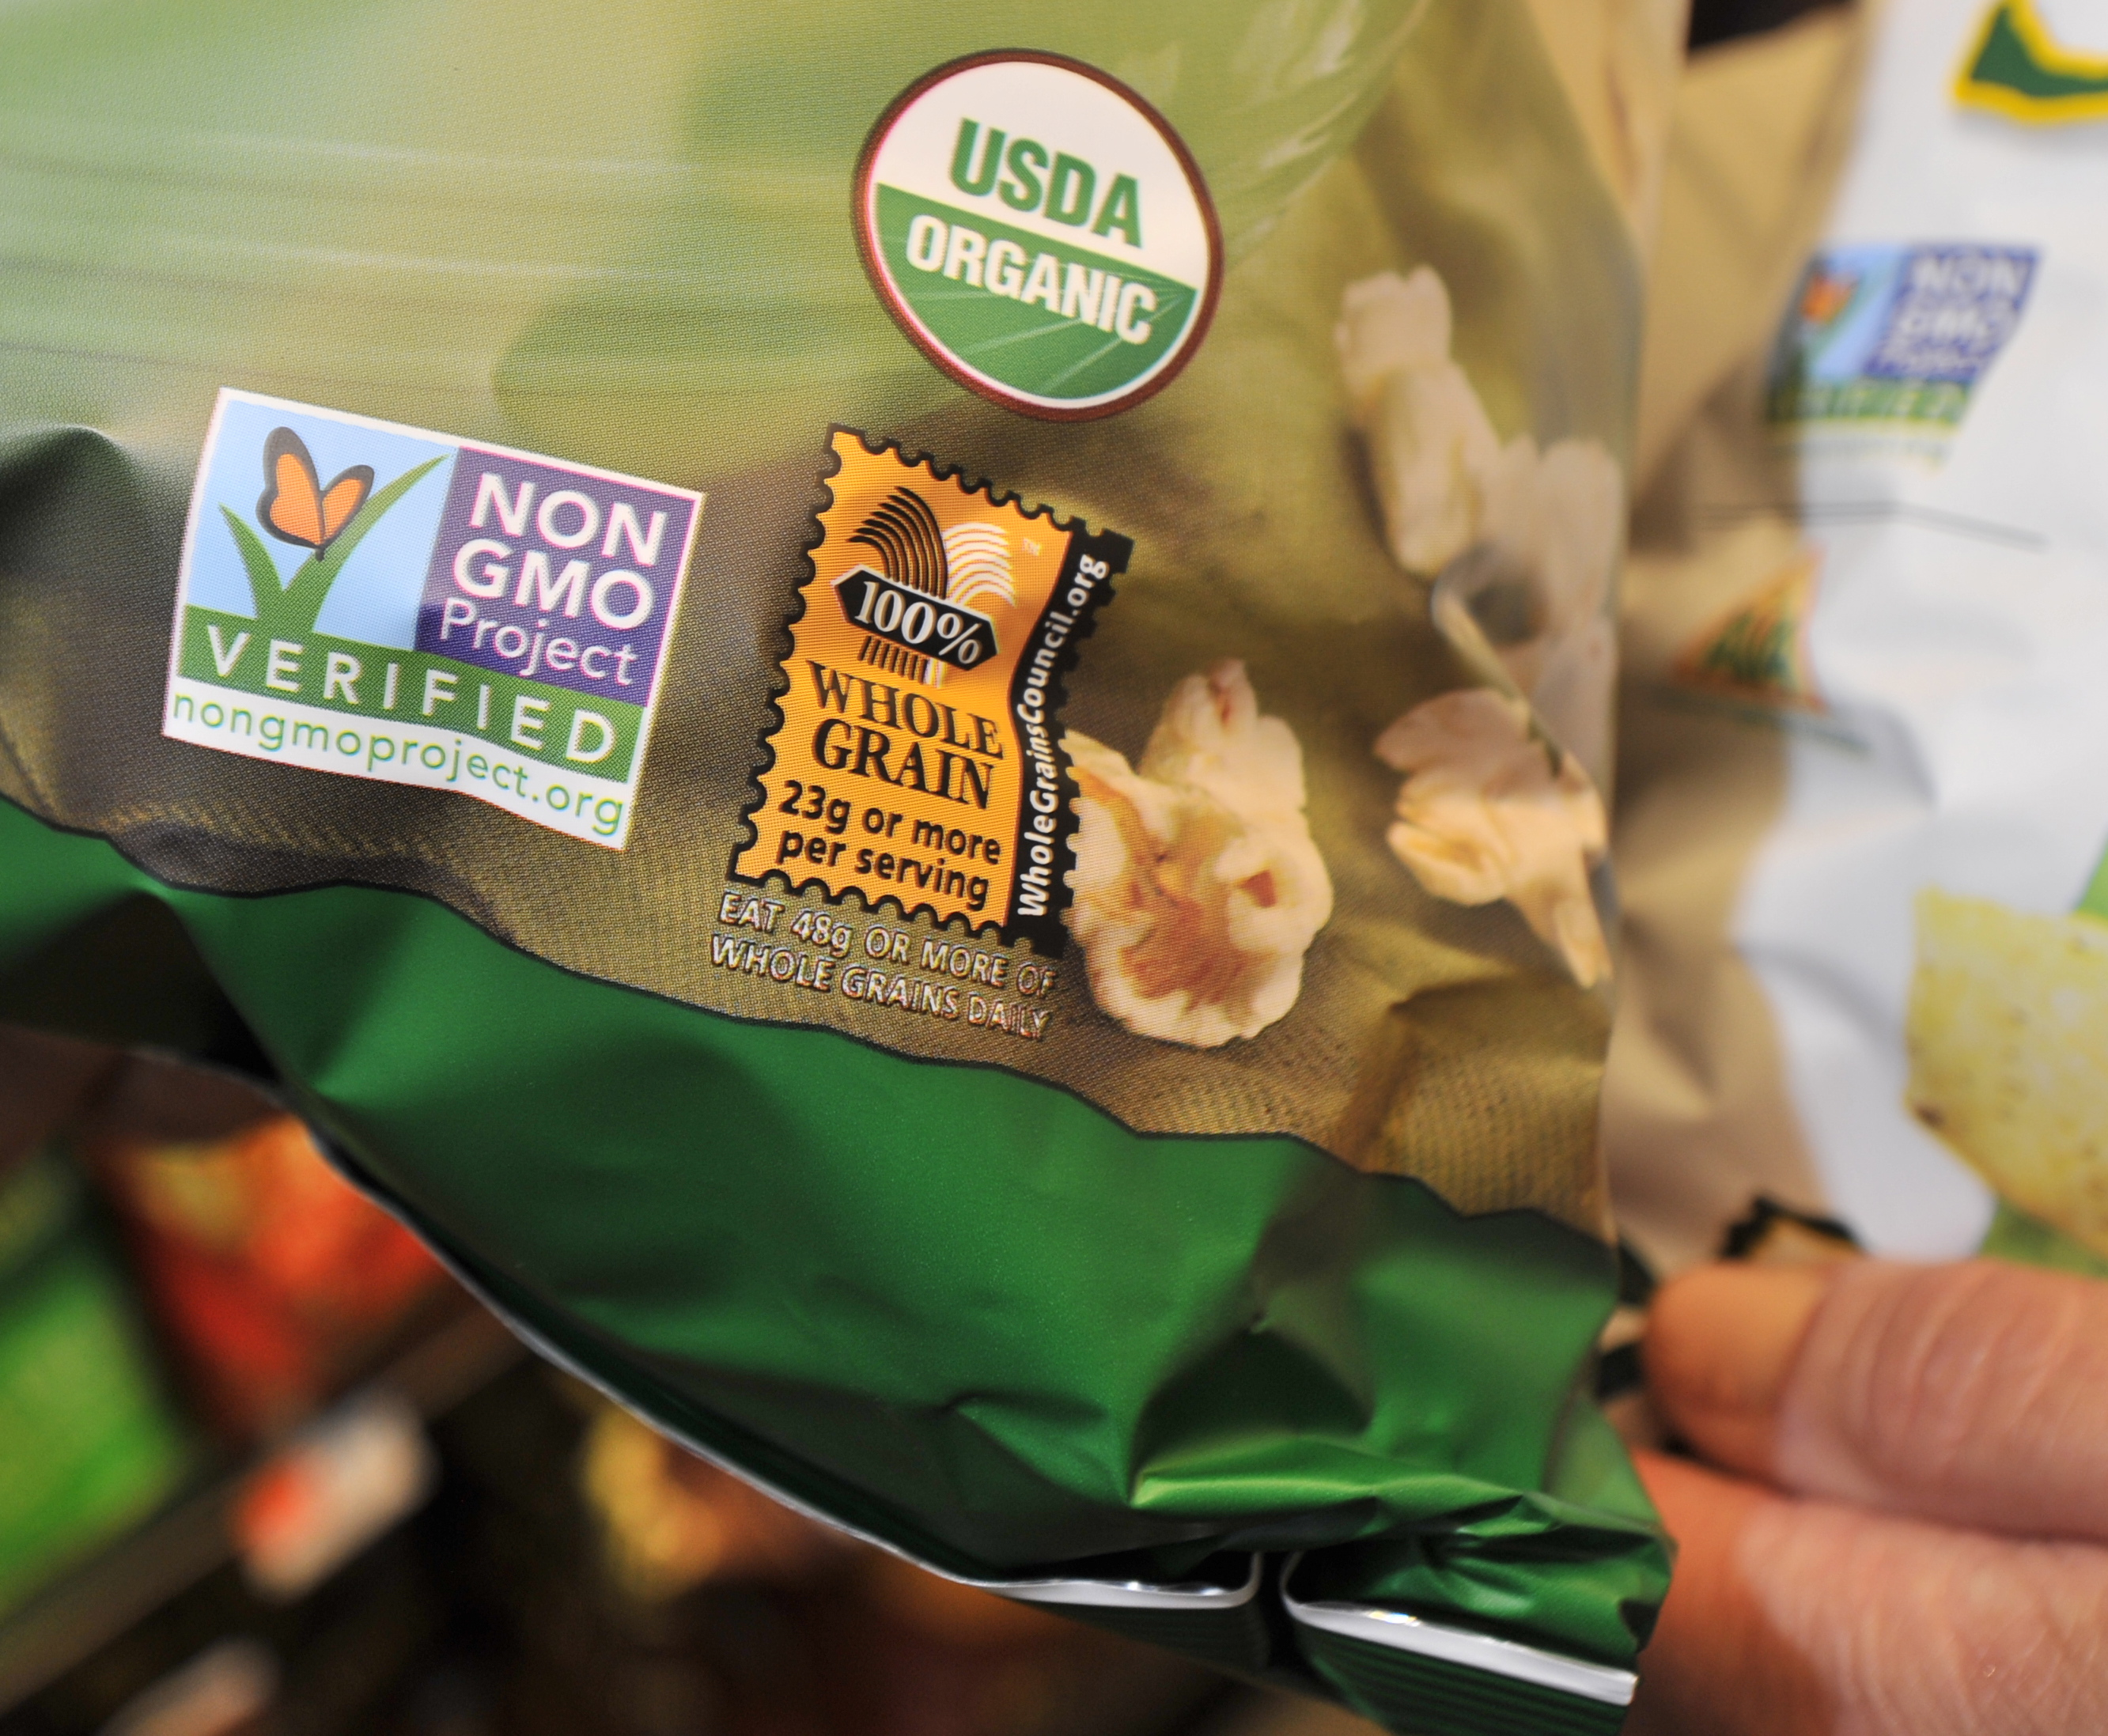 Advocates for organic foods criticize Collins and King for votes on GMO labeling - The Portland Press Herald / Maine Sunday Telegram